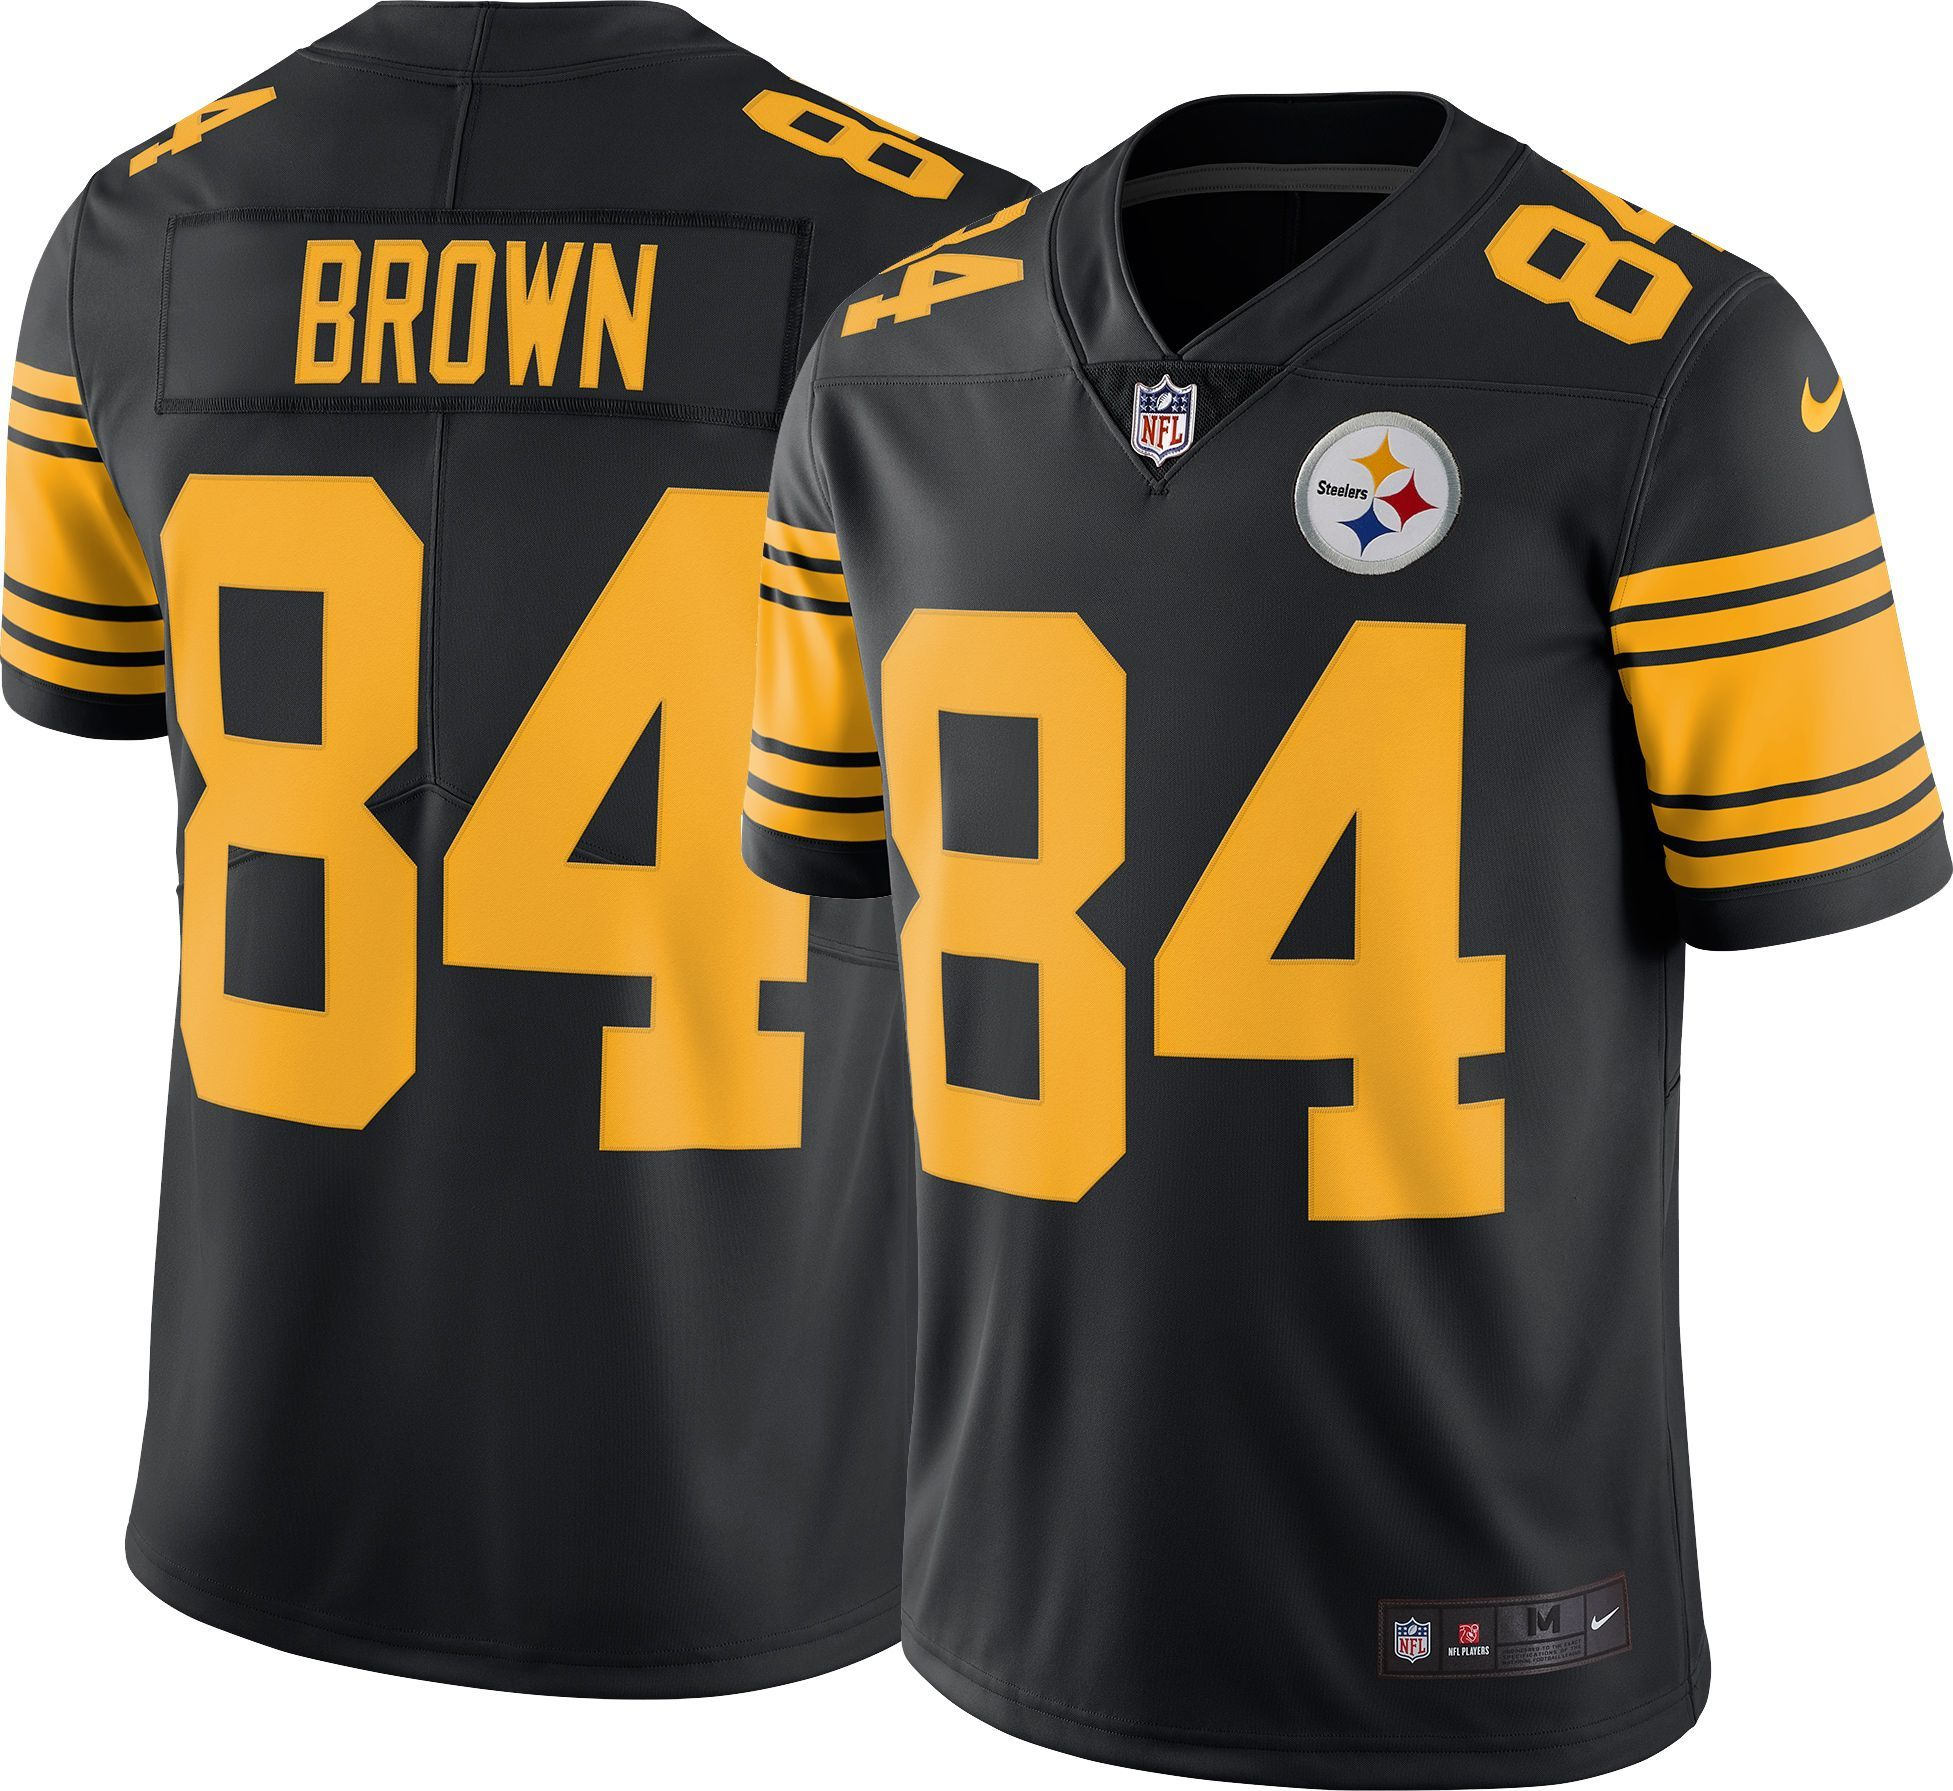 a28c02f98 Nike Men s Color Rush 2016 Limited Jersey Pittsburgh Antonio Brown  84